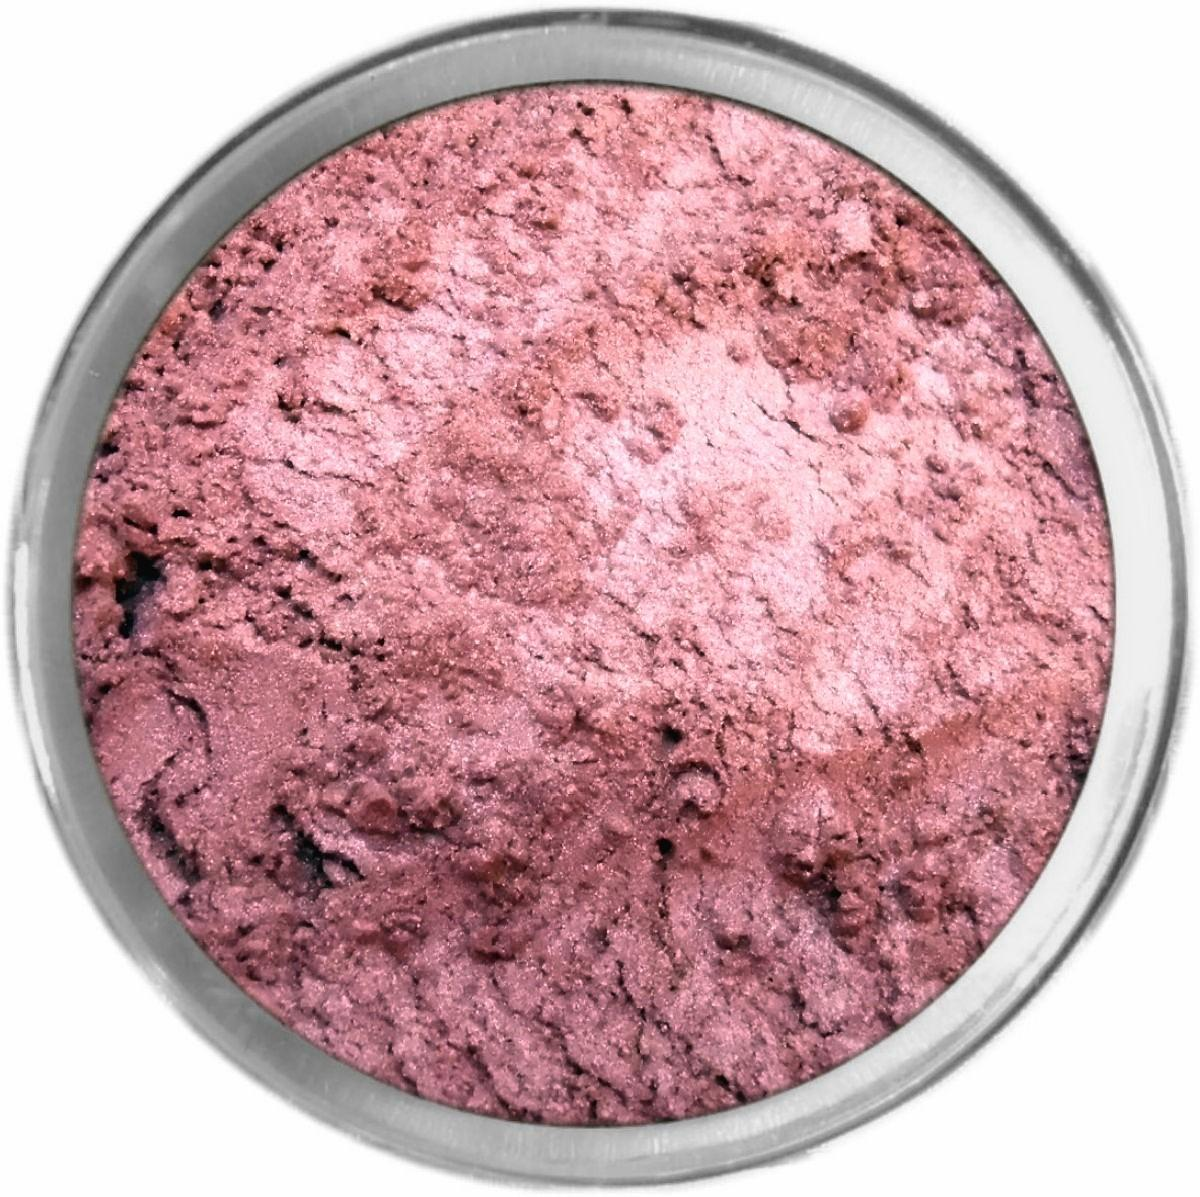 APRIL WINE loose powder mineral multi-use color makeup bare earth pigment minerals